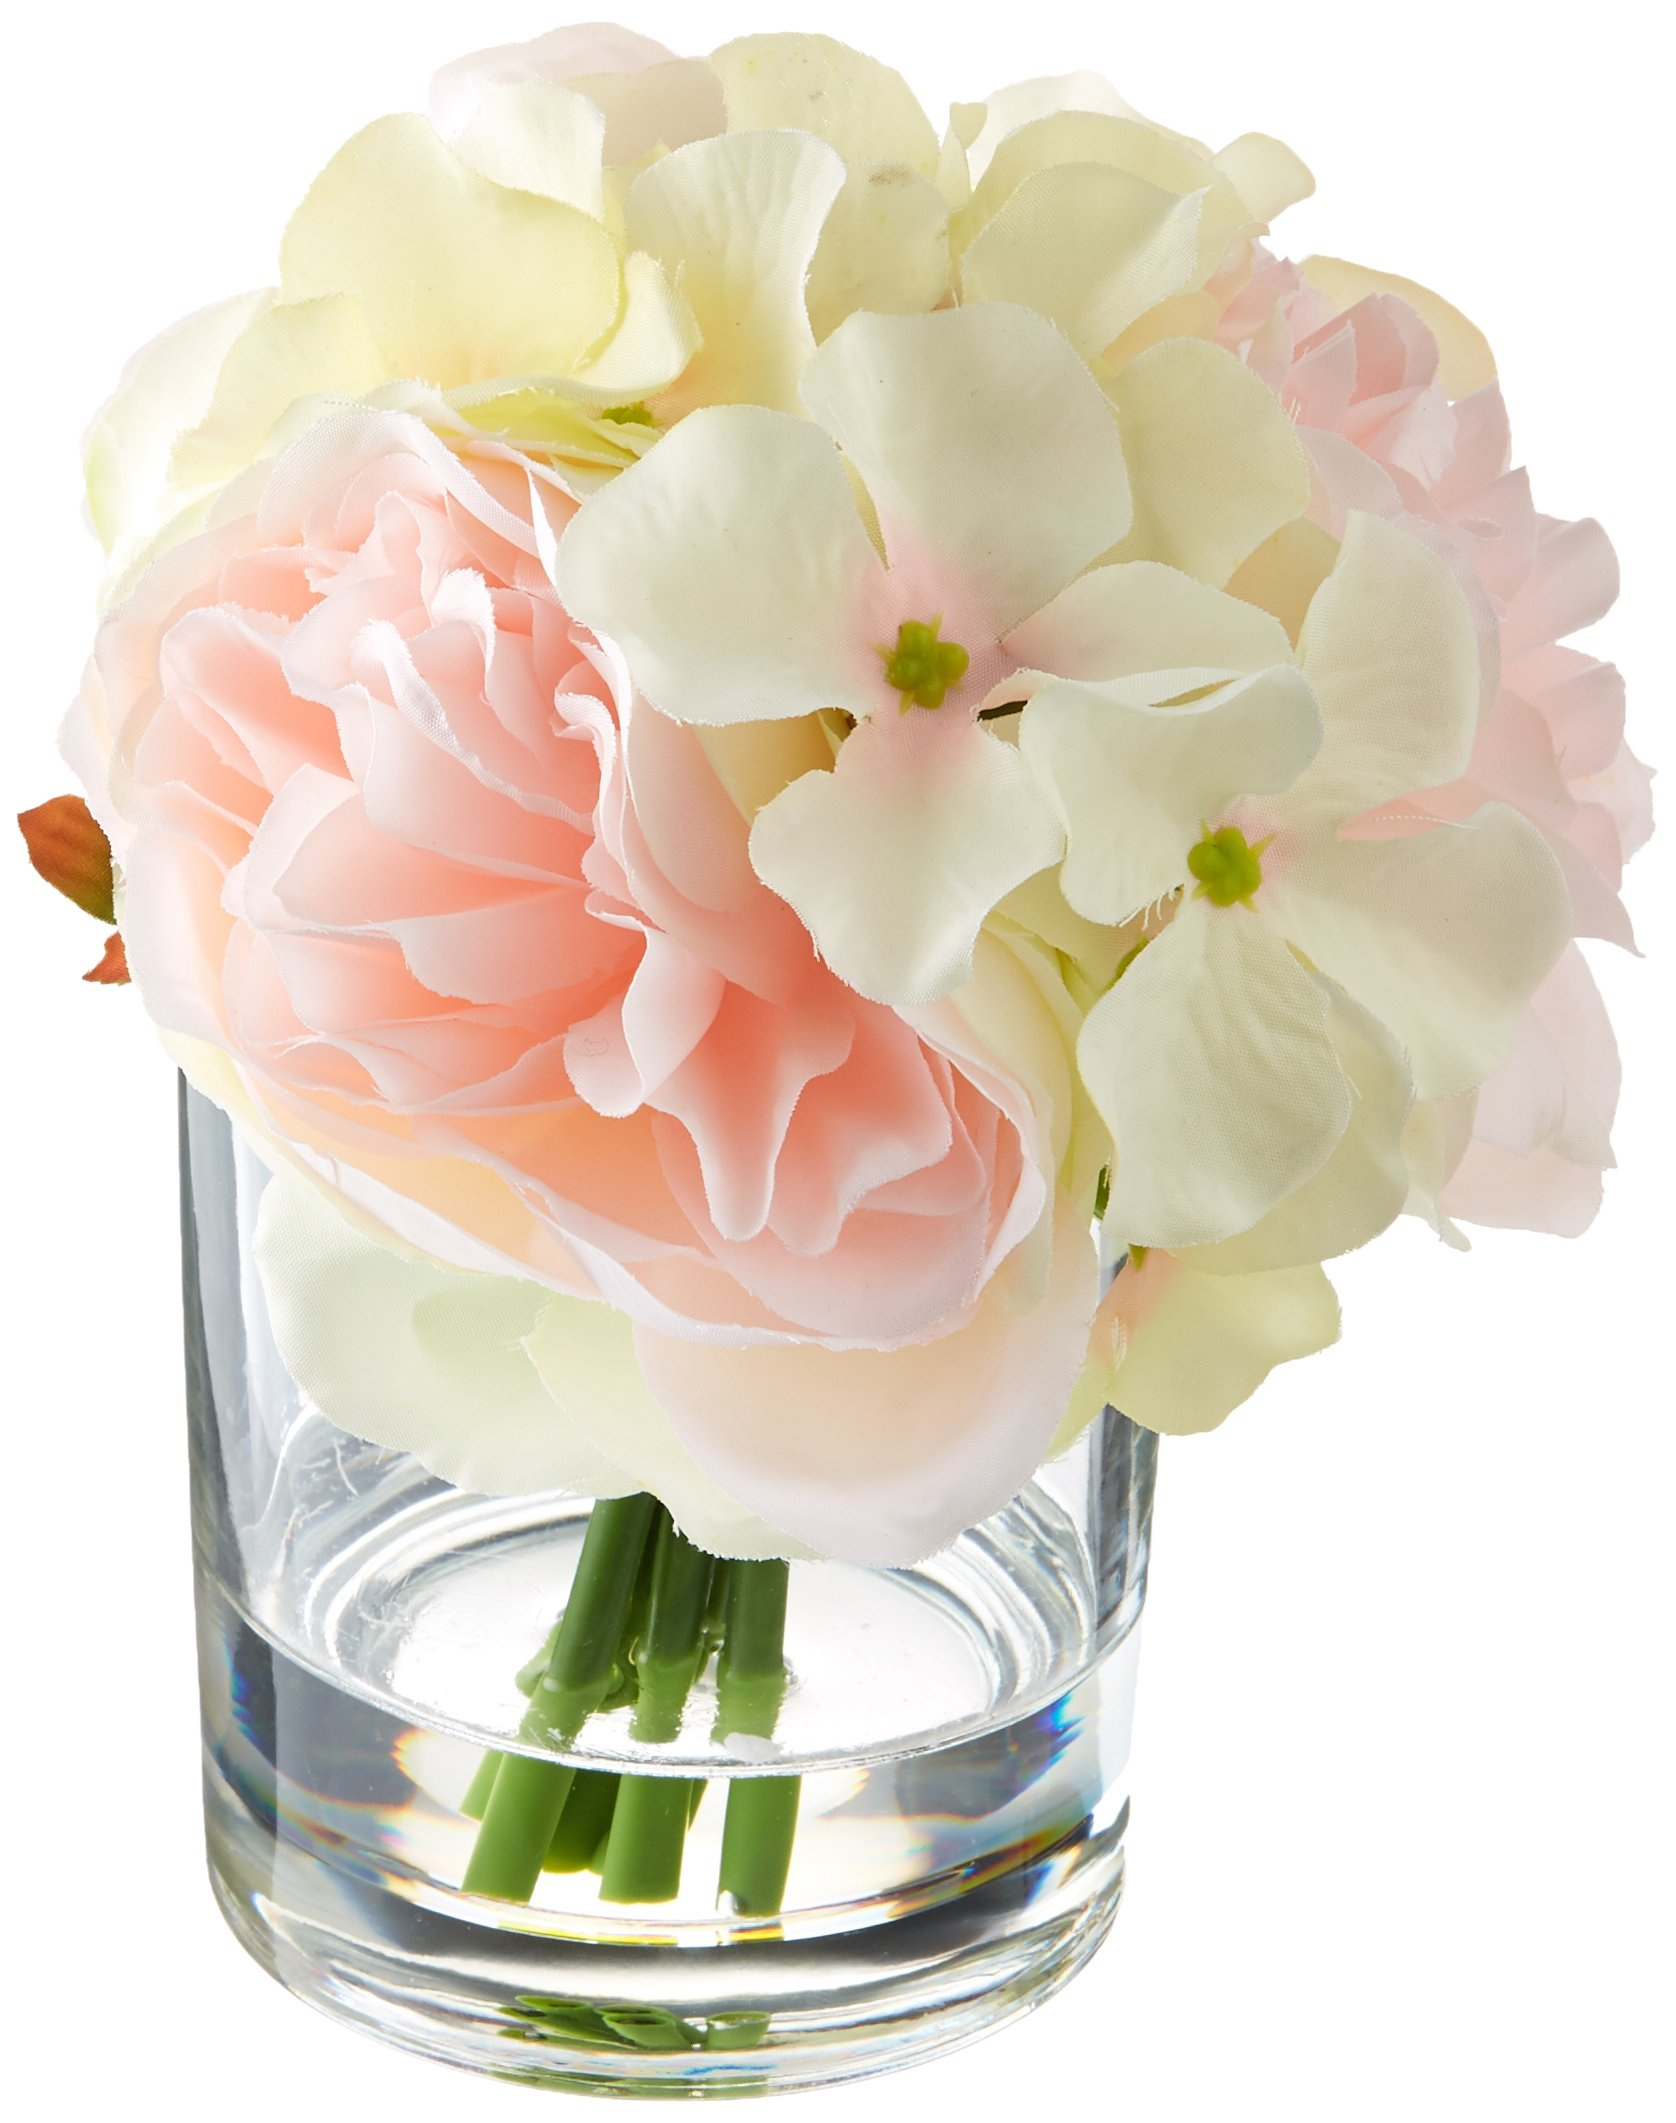 Pure Garden Hydrangea and Rose Floral Arrangement – Pink and Cream